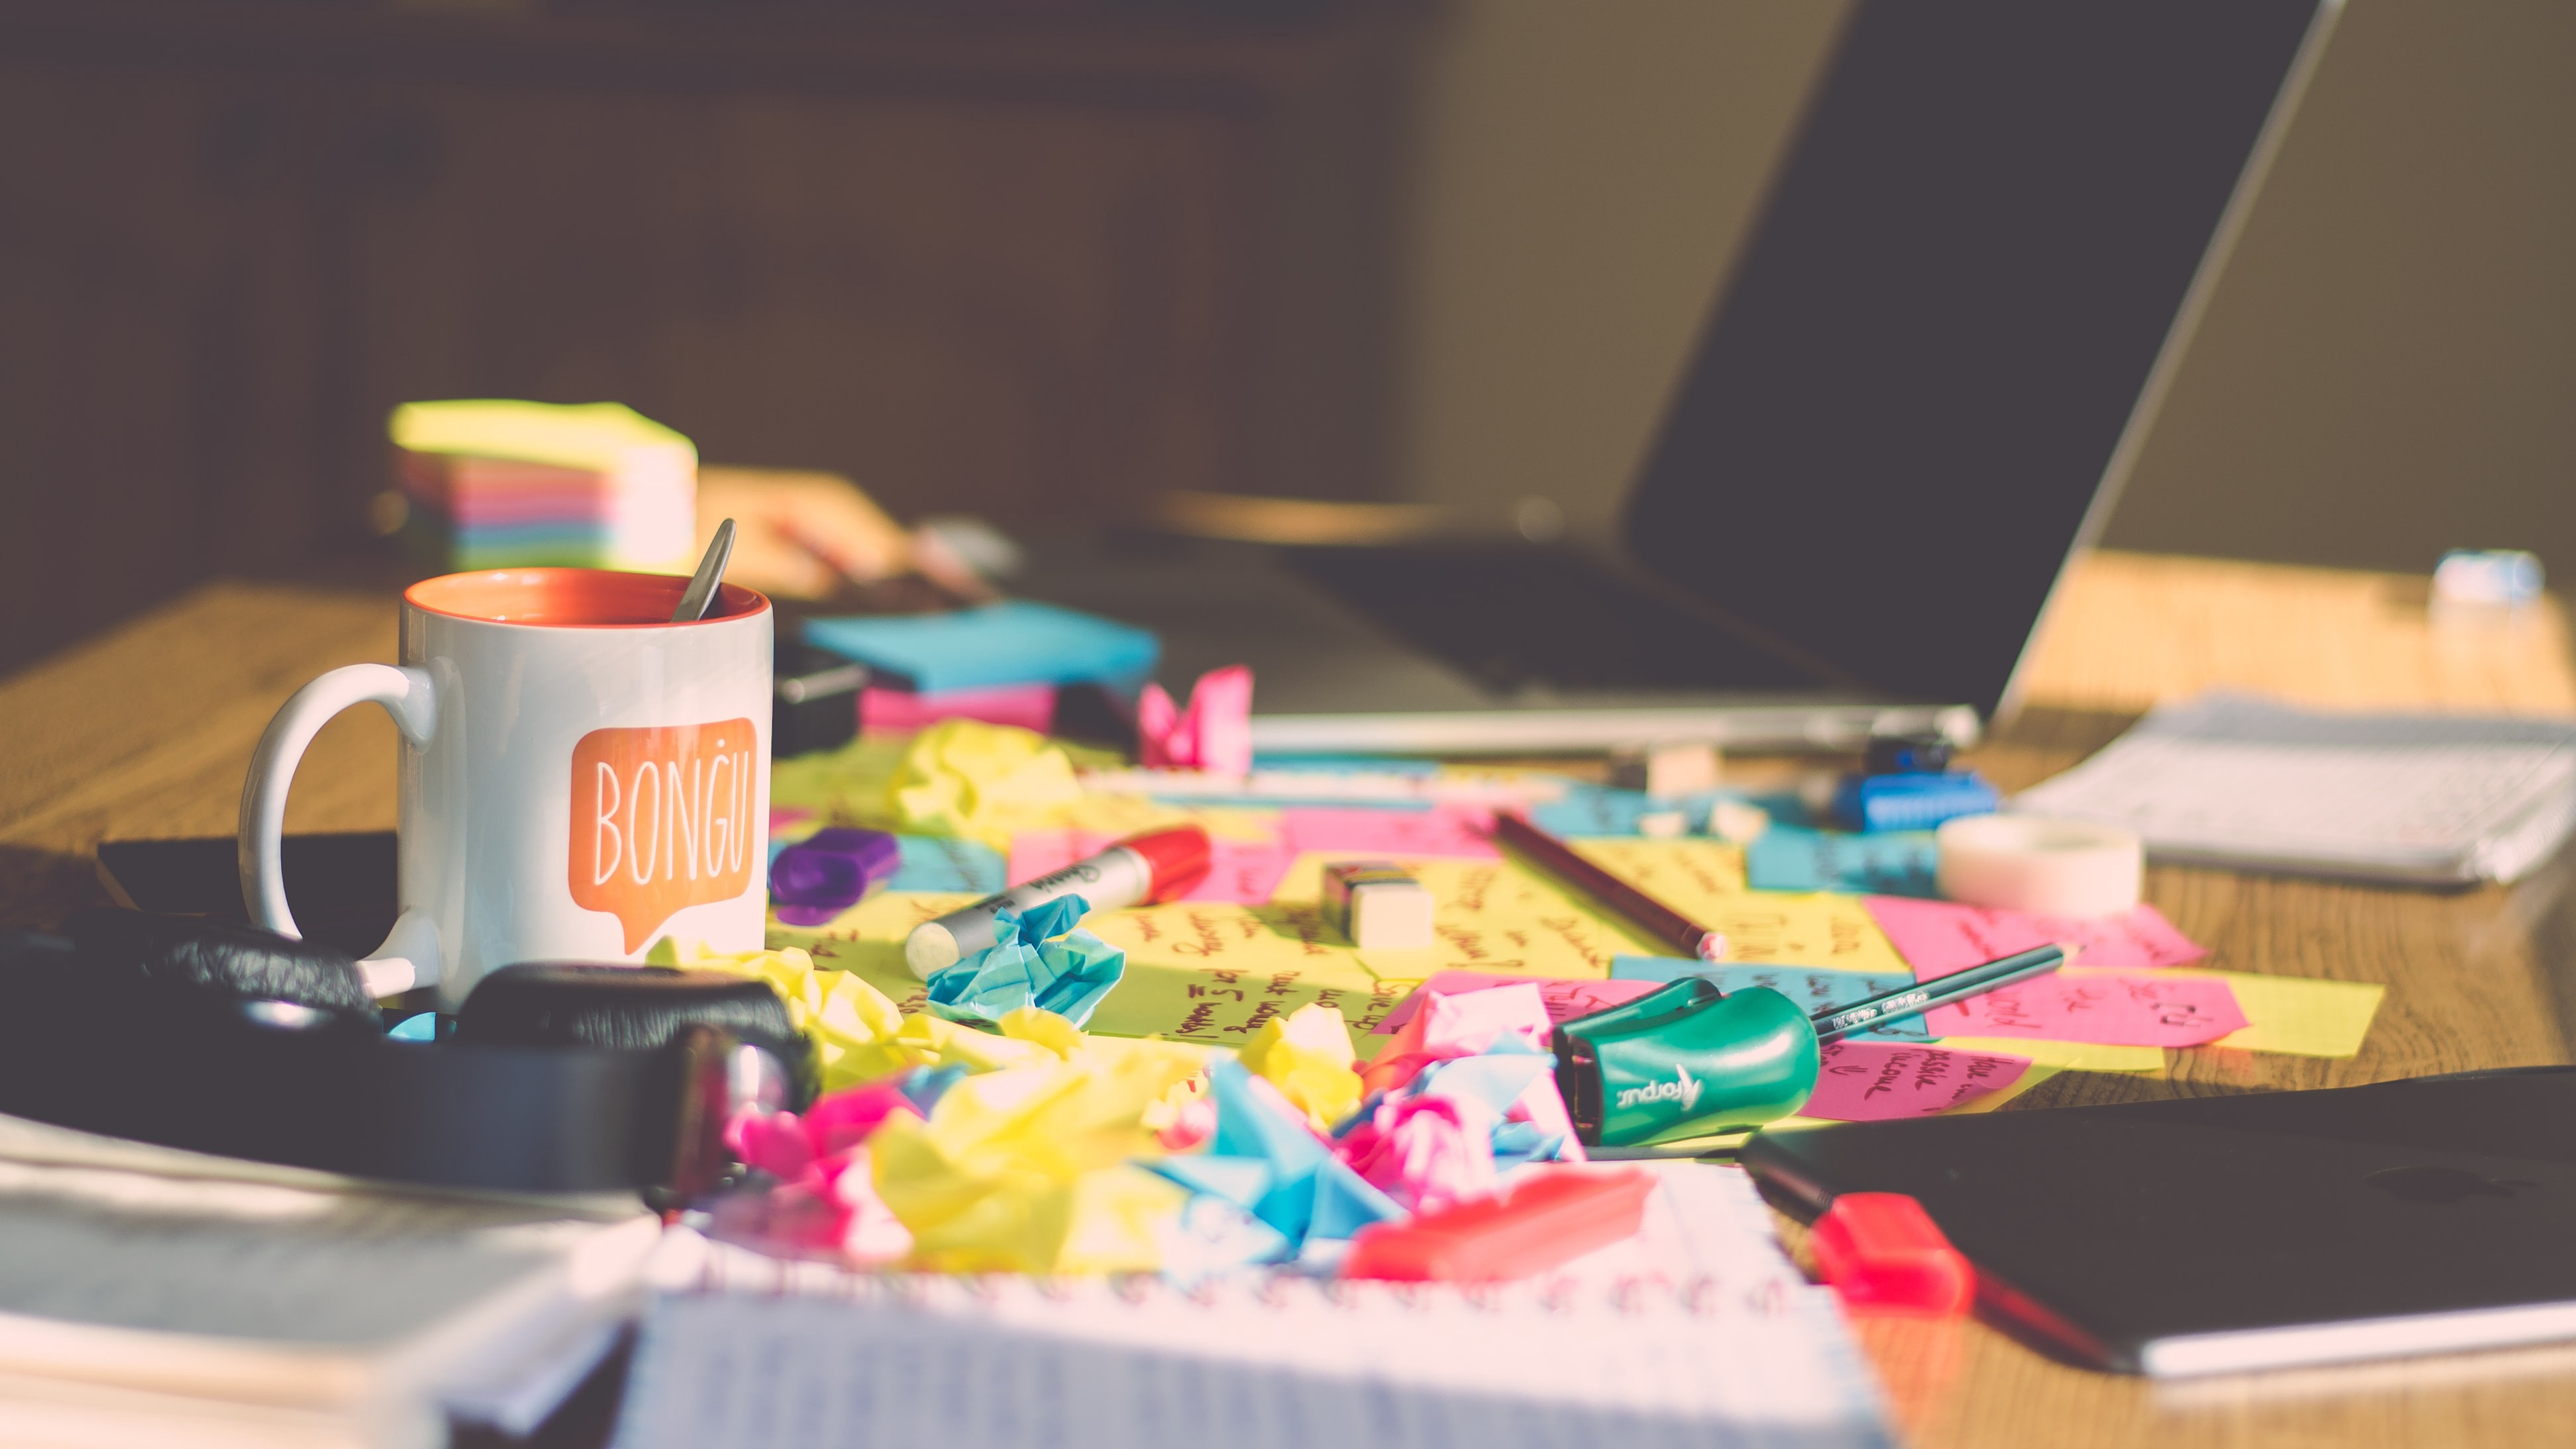 Sticky notes on a table